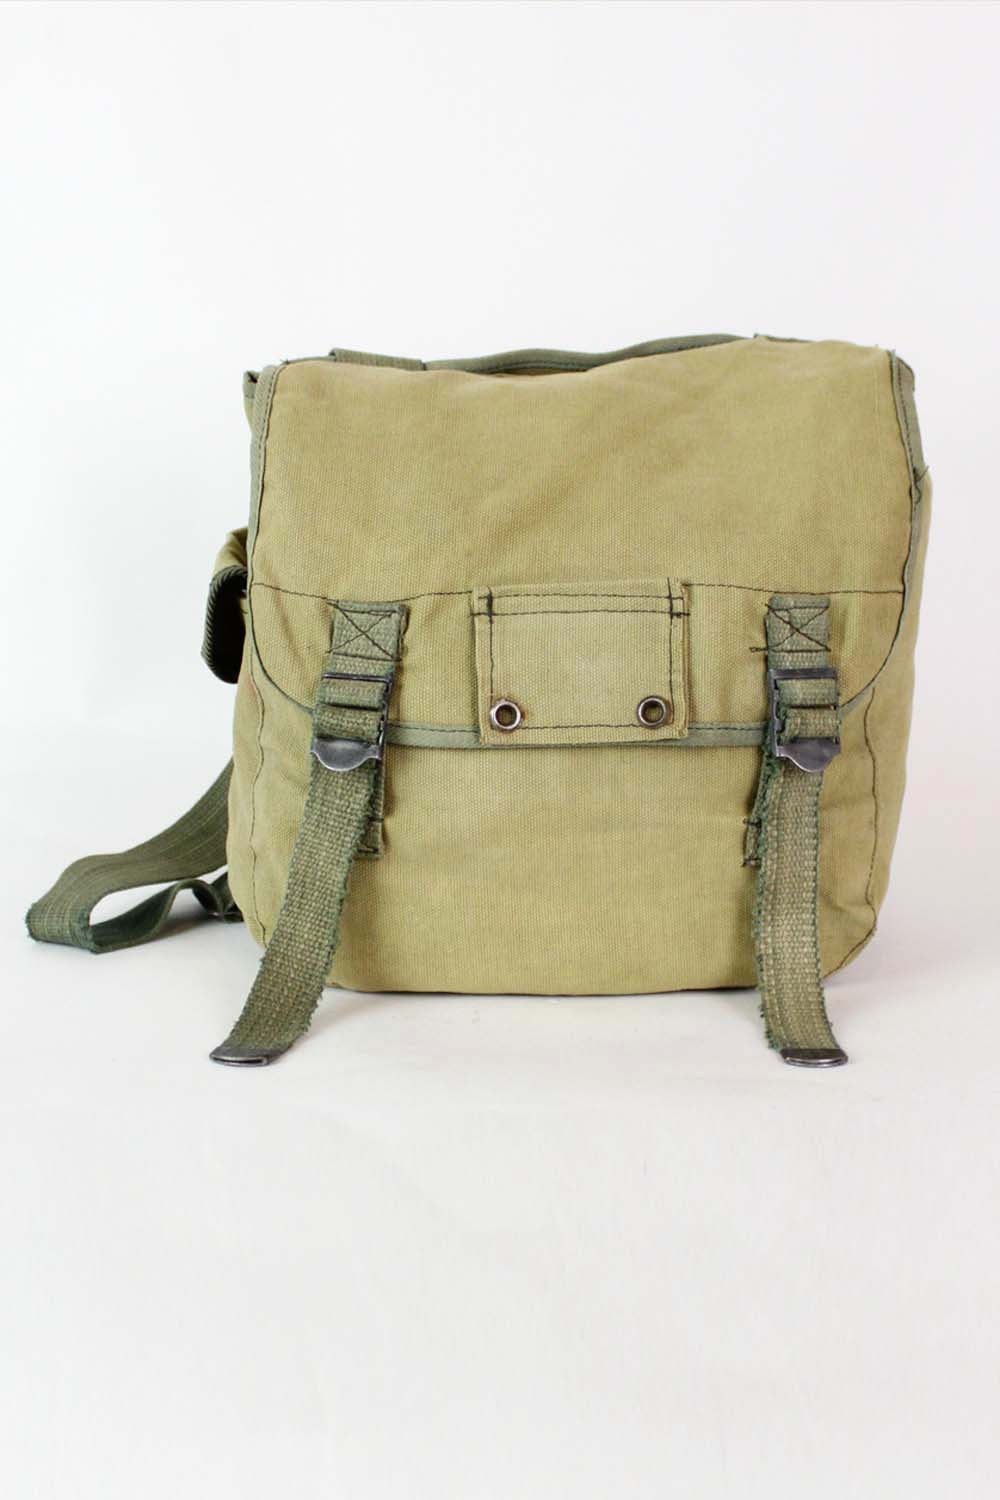 small army canvas bag